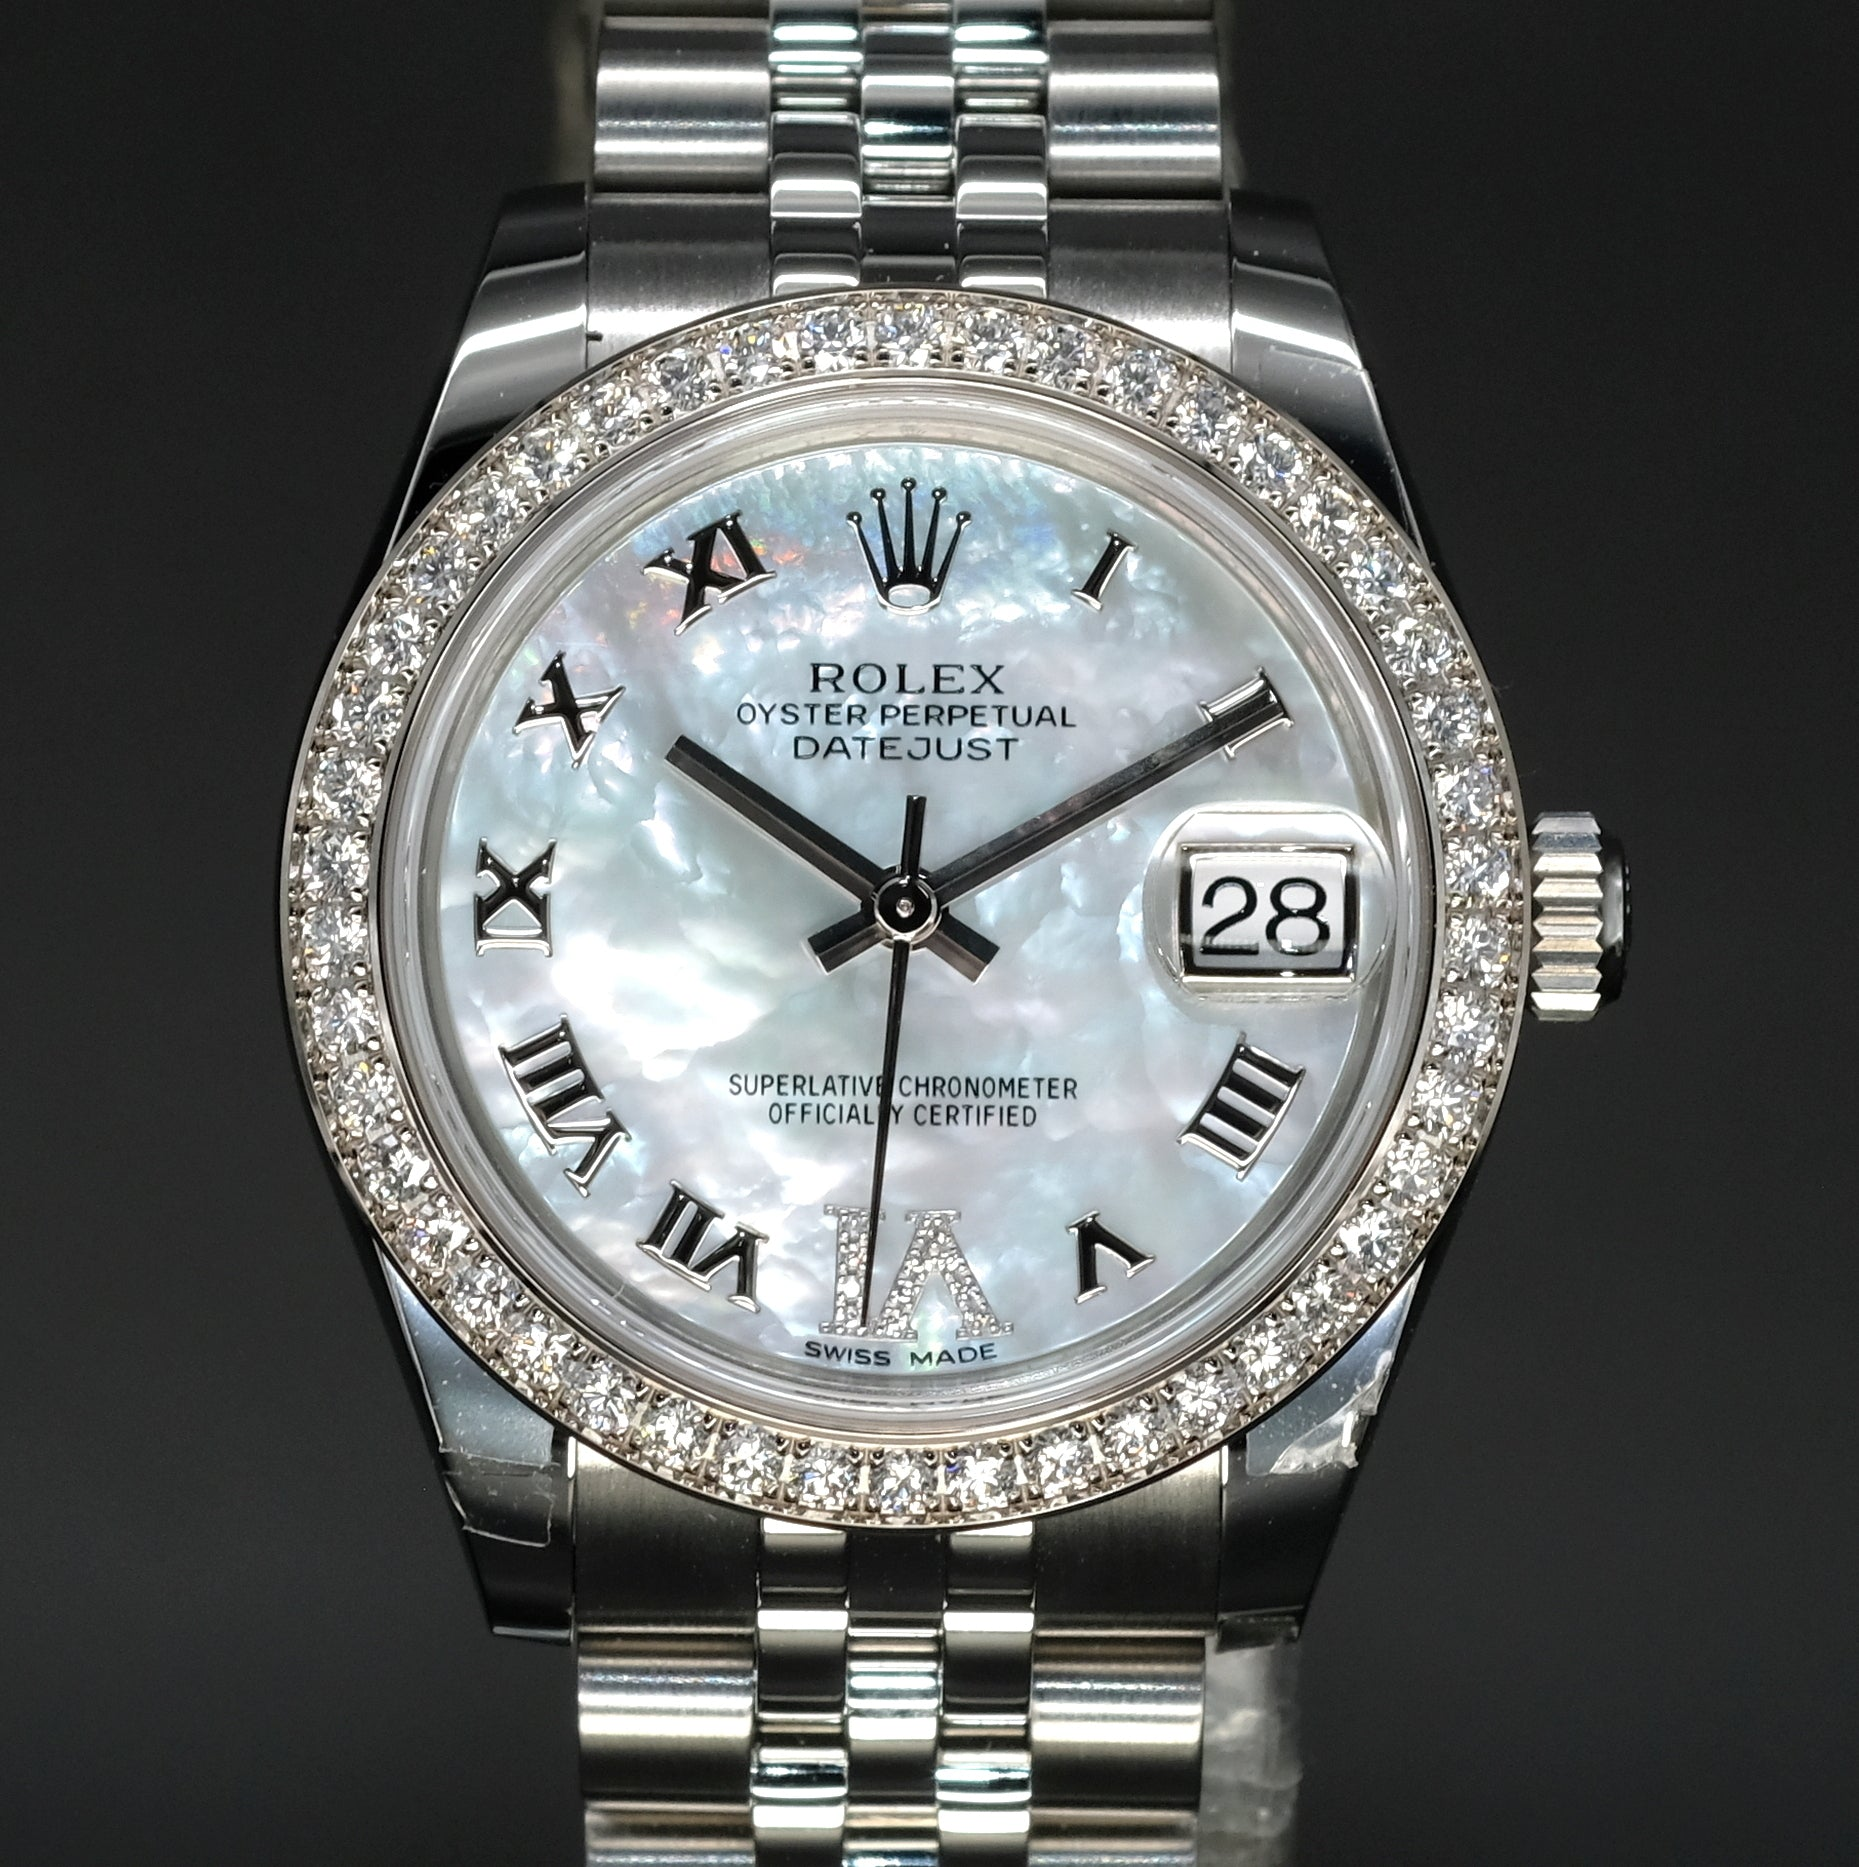 [Brand New Watch] Rolex Datejust 31 31mm 178384 White Mother-of-Pearl Dial with VI Diamonds (Jubilee Bracelet)